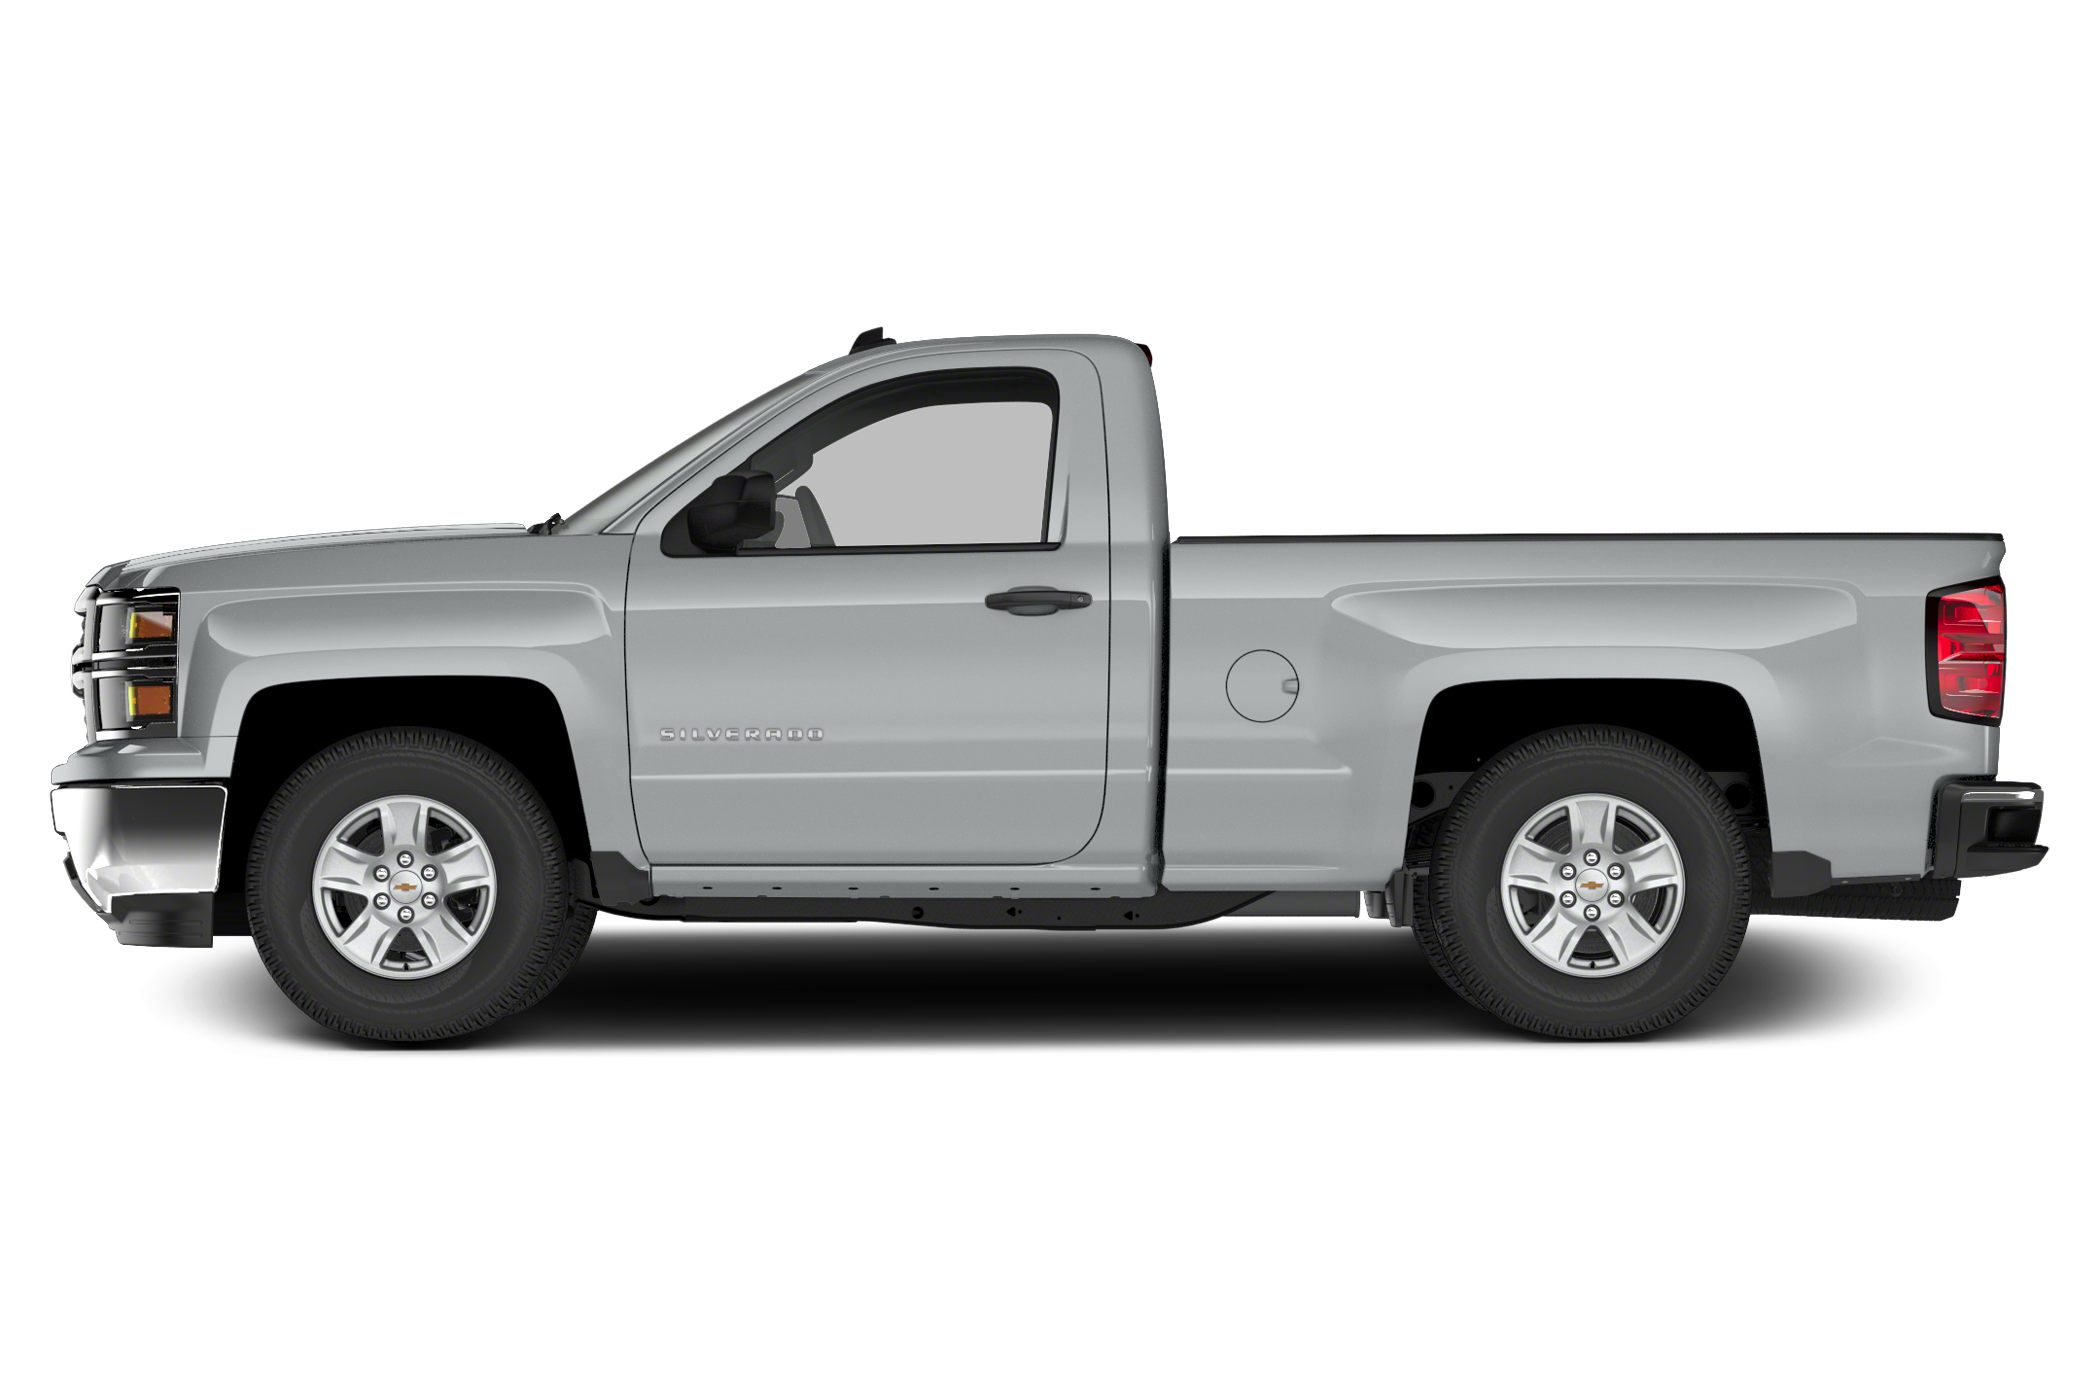 Chevrolet Silverado 1500 Regular Cab Specs Photos 2013